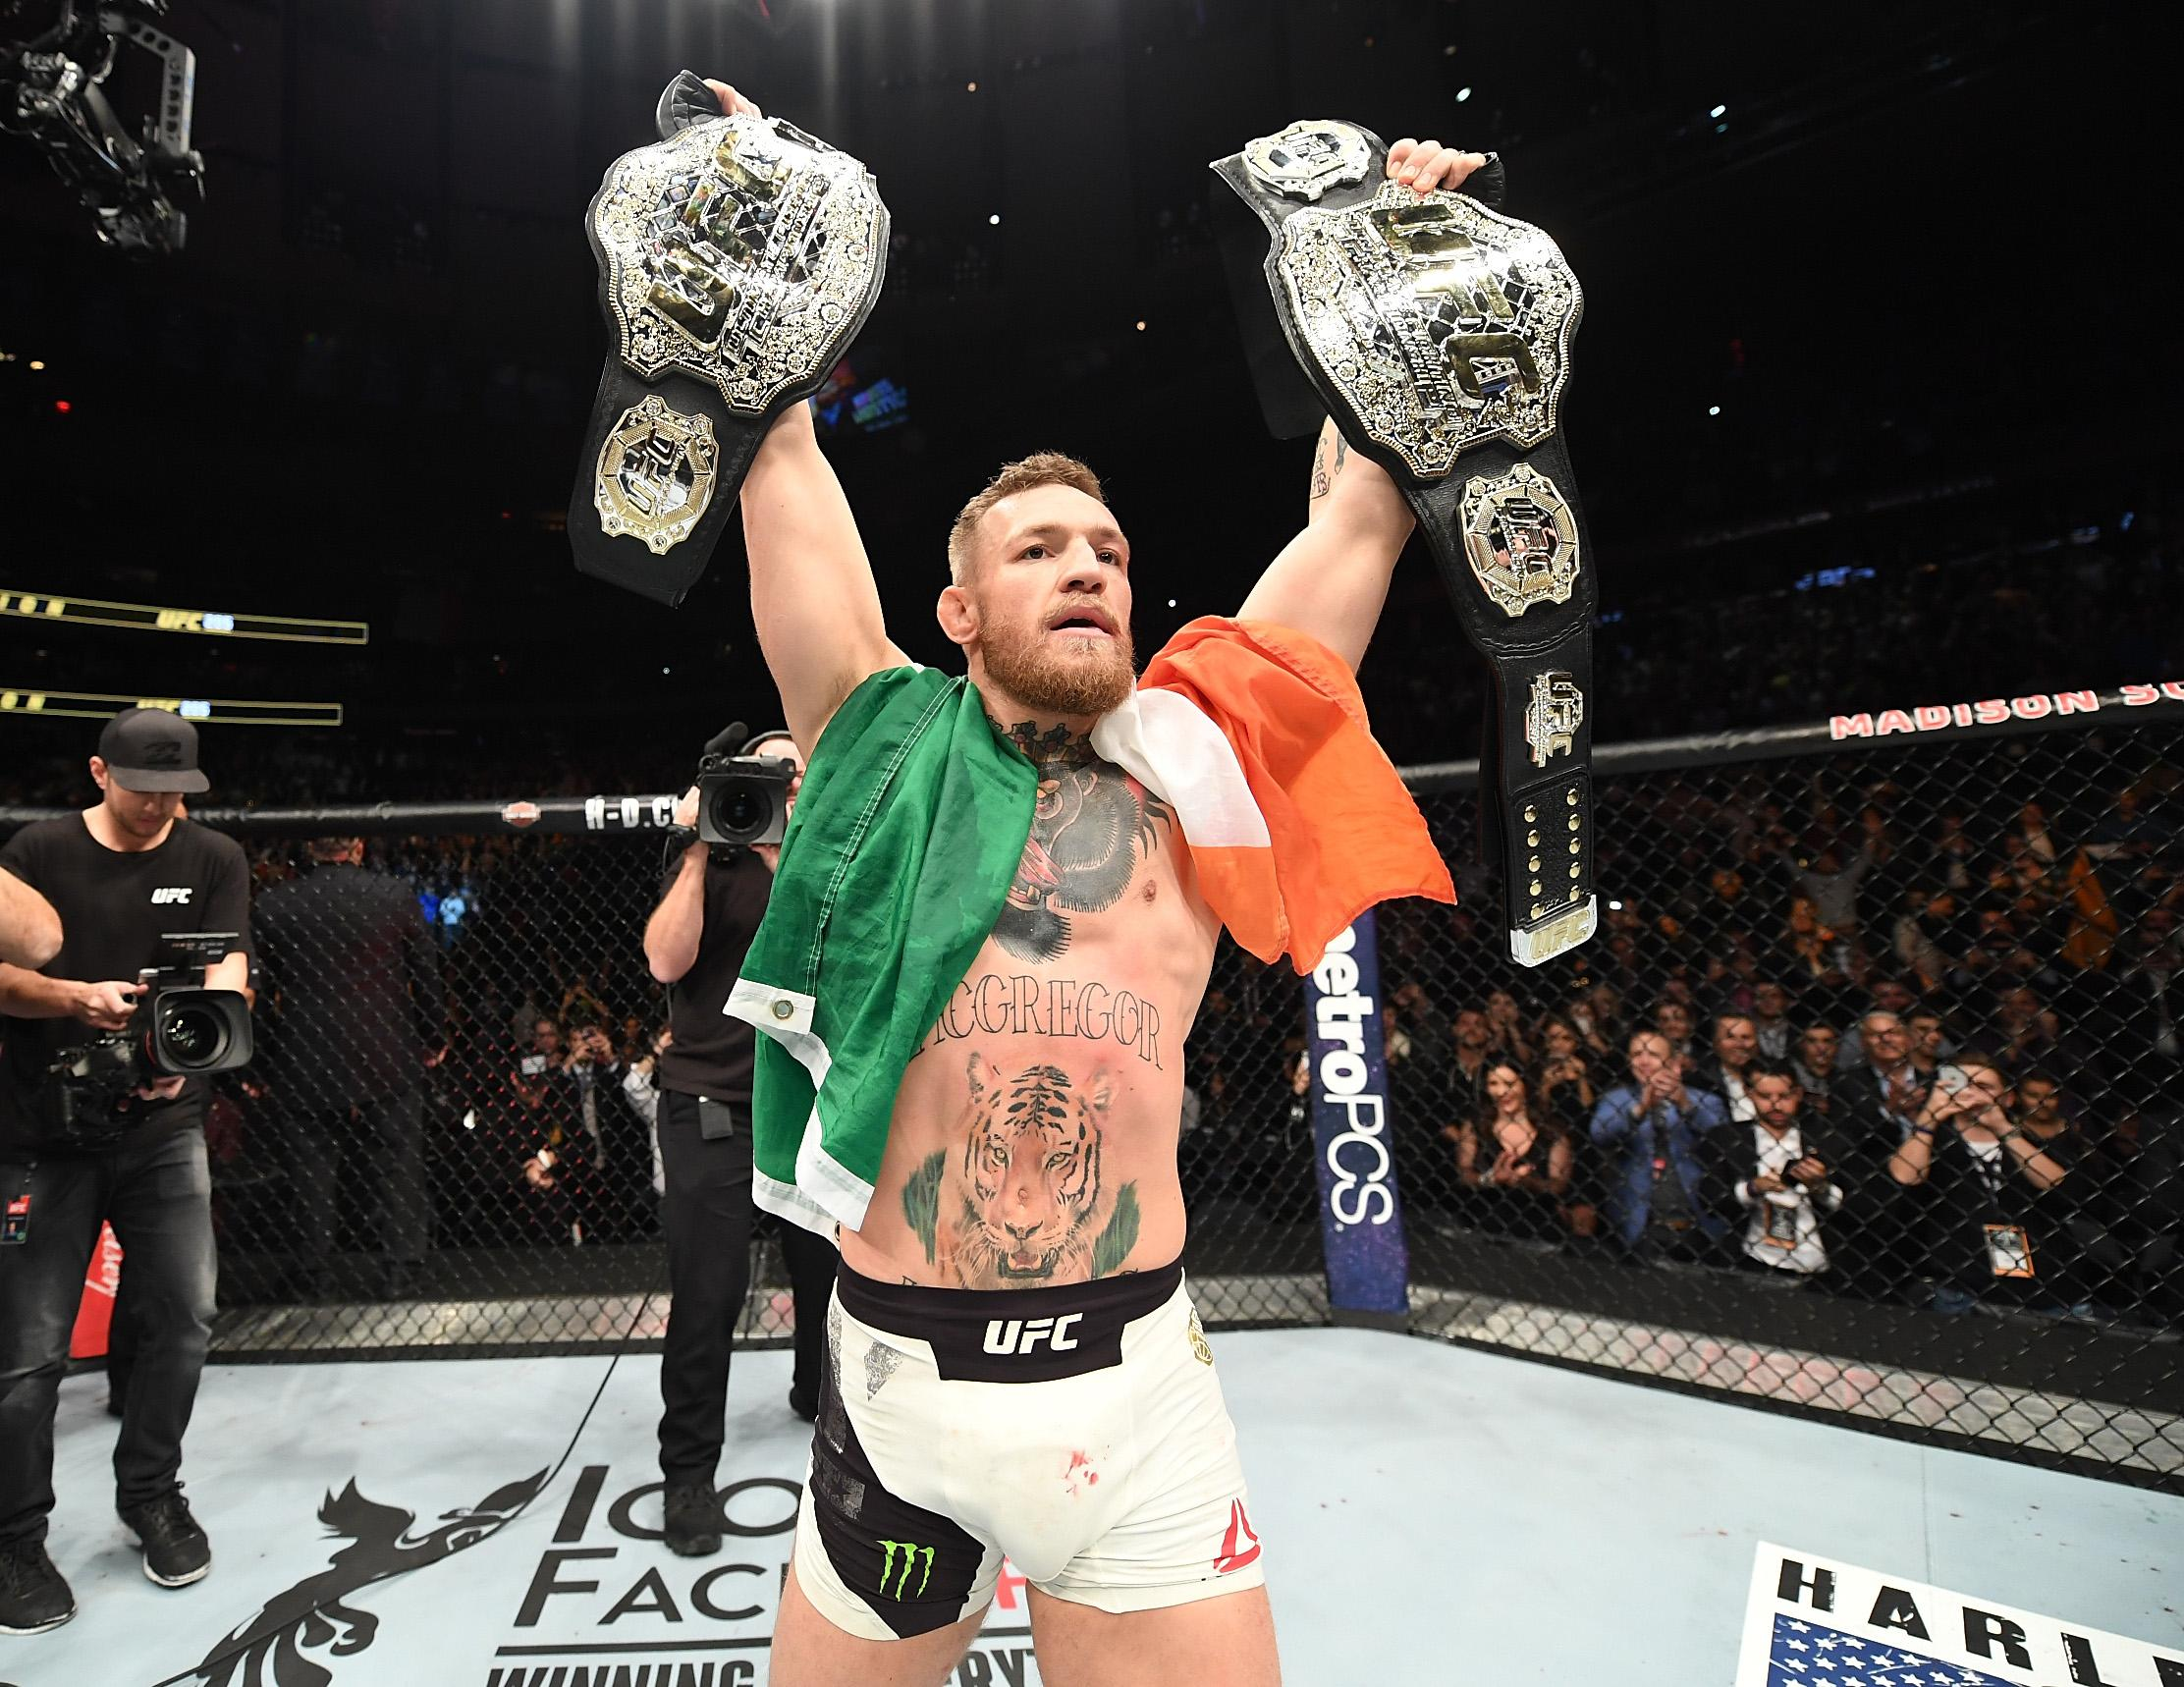 Former featherweight champ McGregor added the lightweight title to hiis name after beating Eddie Alvarez at UFC 205 in 2016